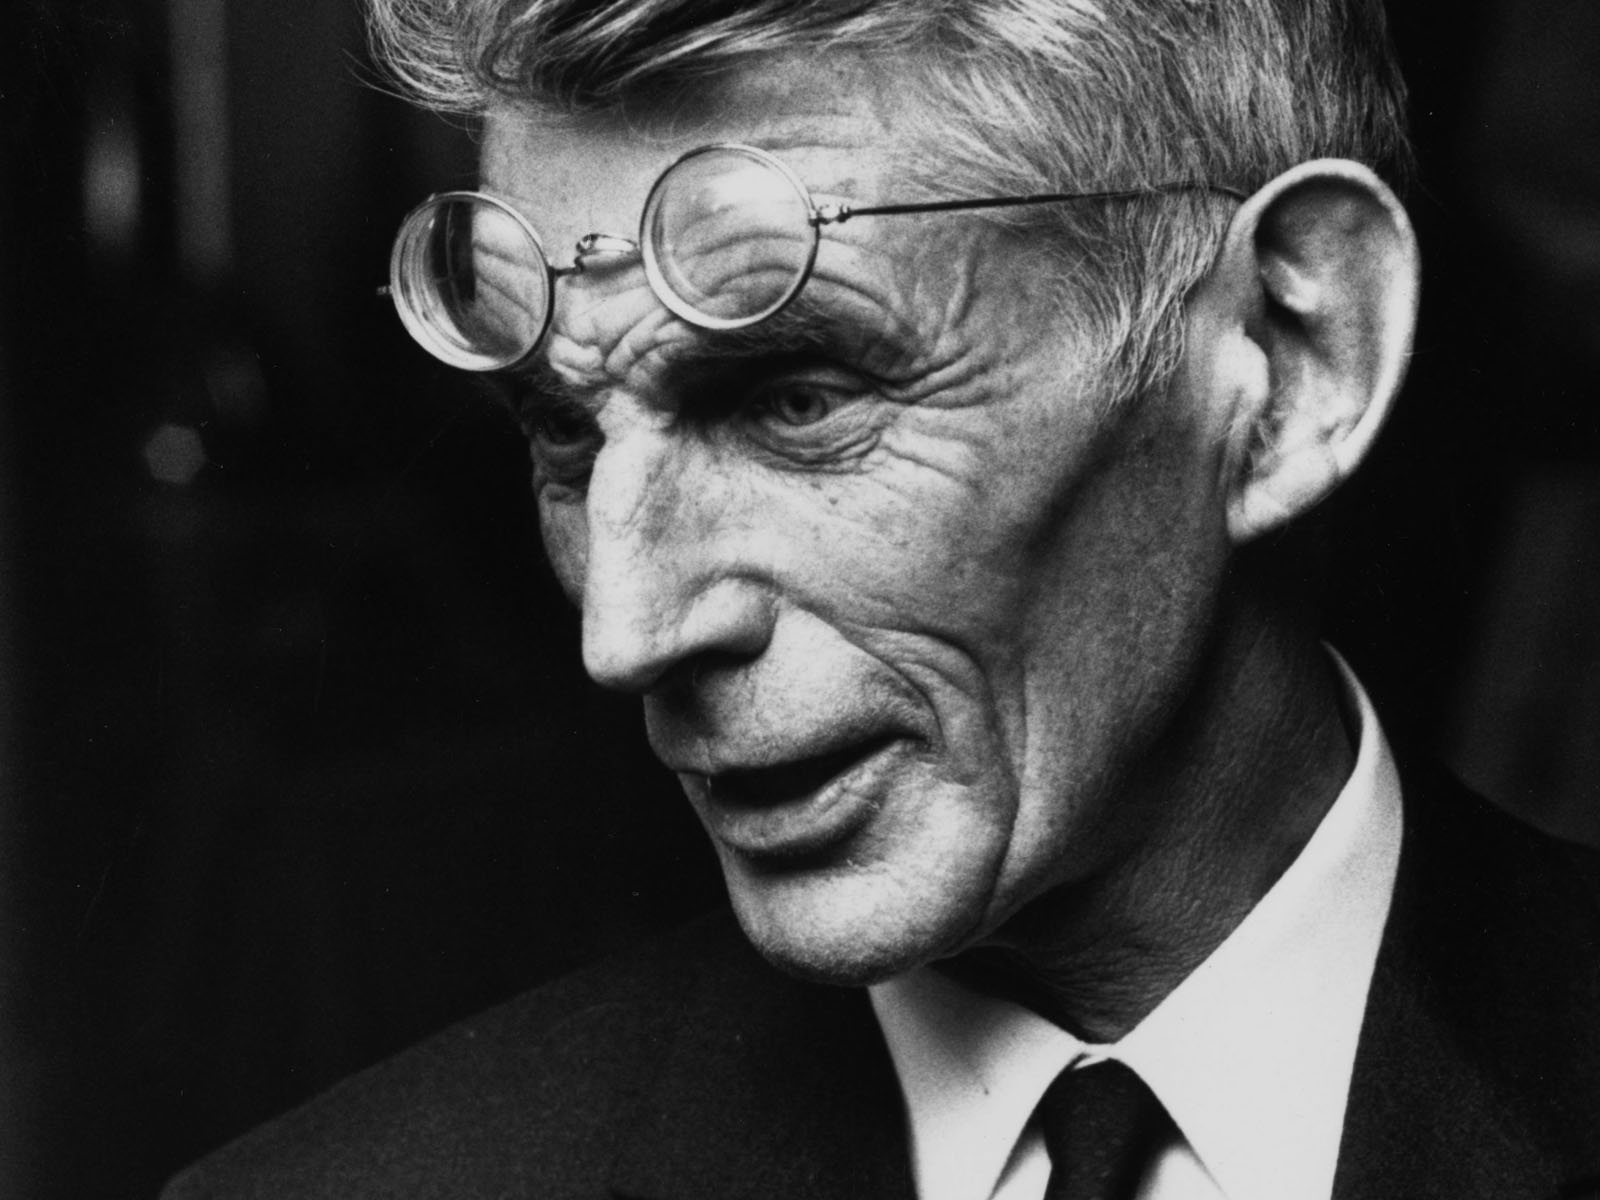 Irish playwright and author Samuel Beckett (1906 - 1989) at a first night performance, 25th April 1970. (Photo by Reg Lancaster/Express/Getty Images)